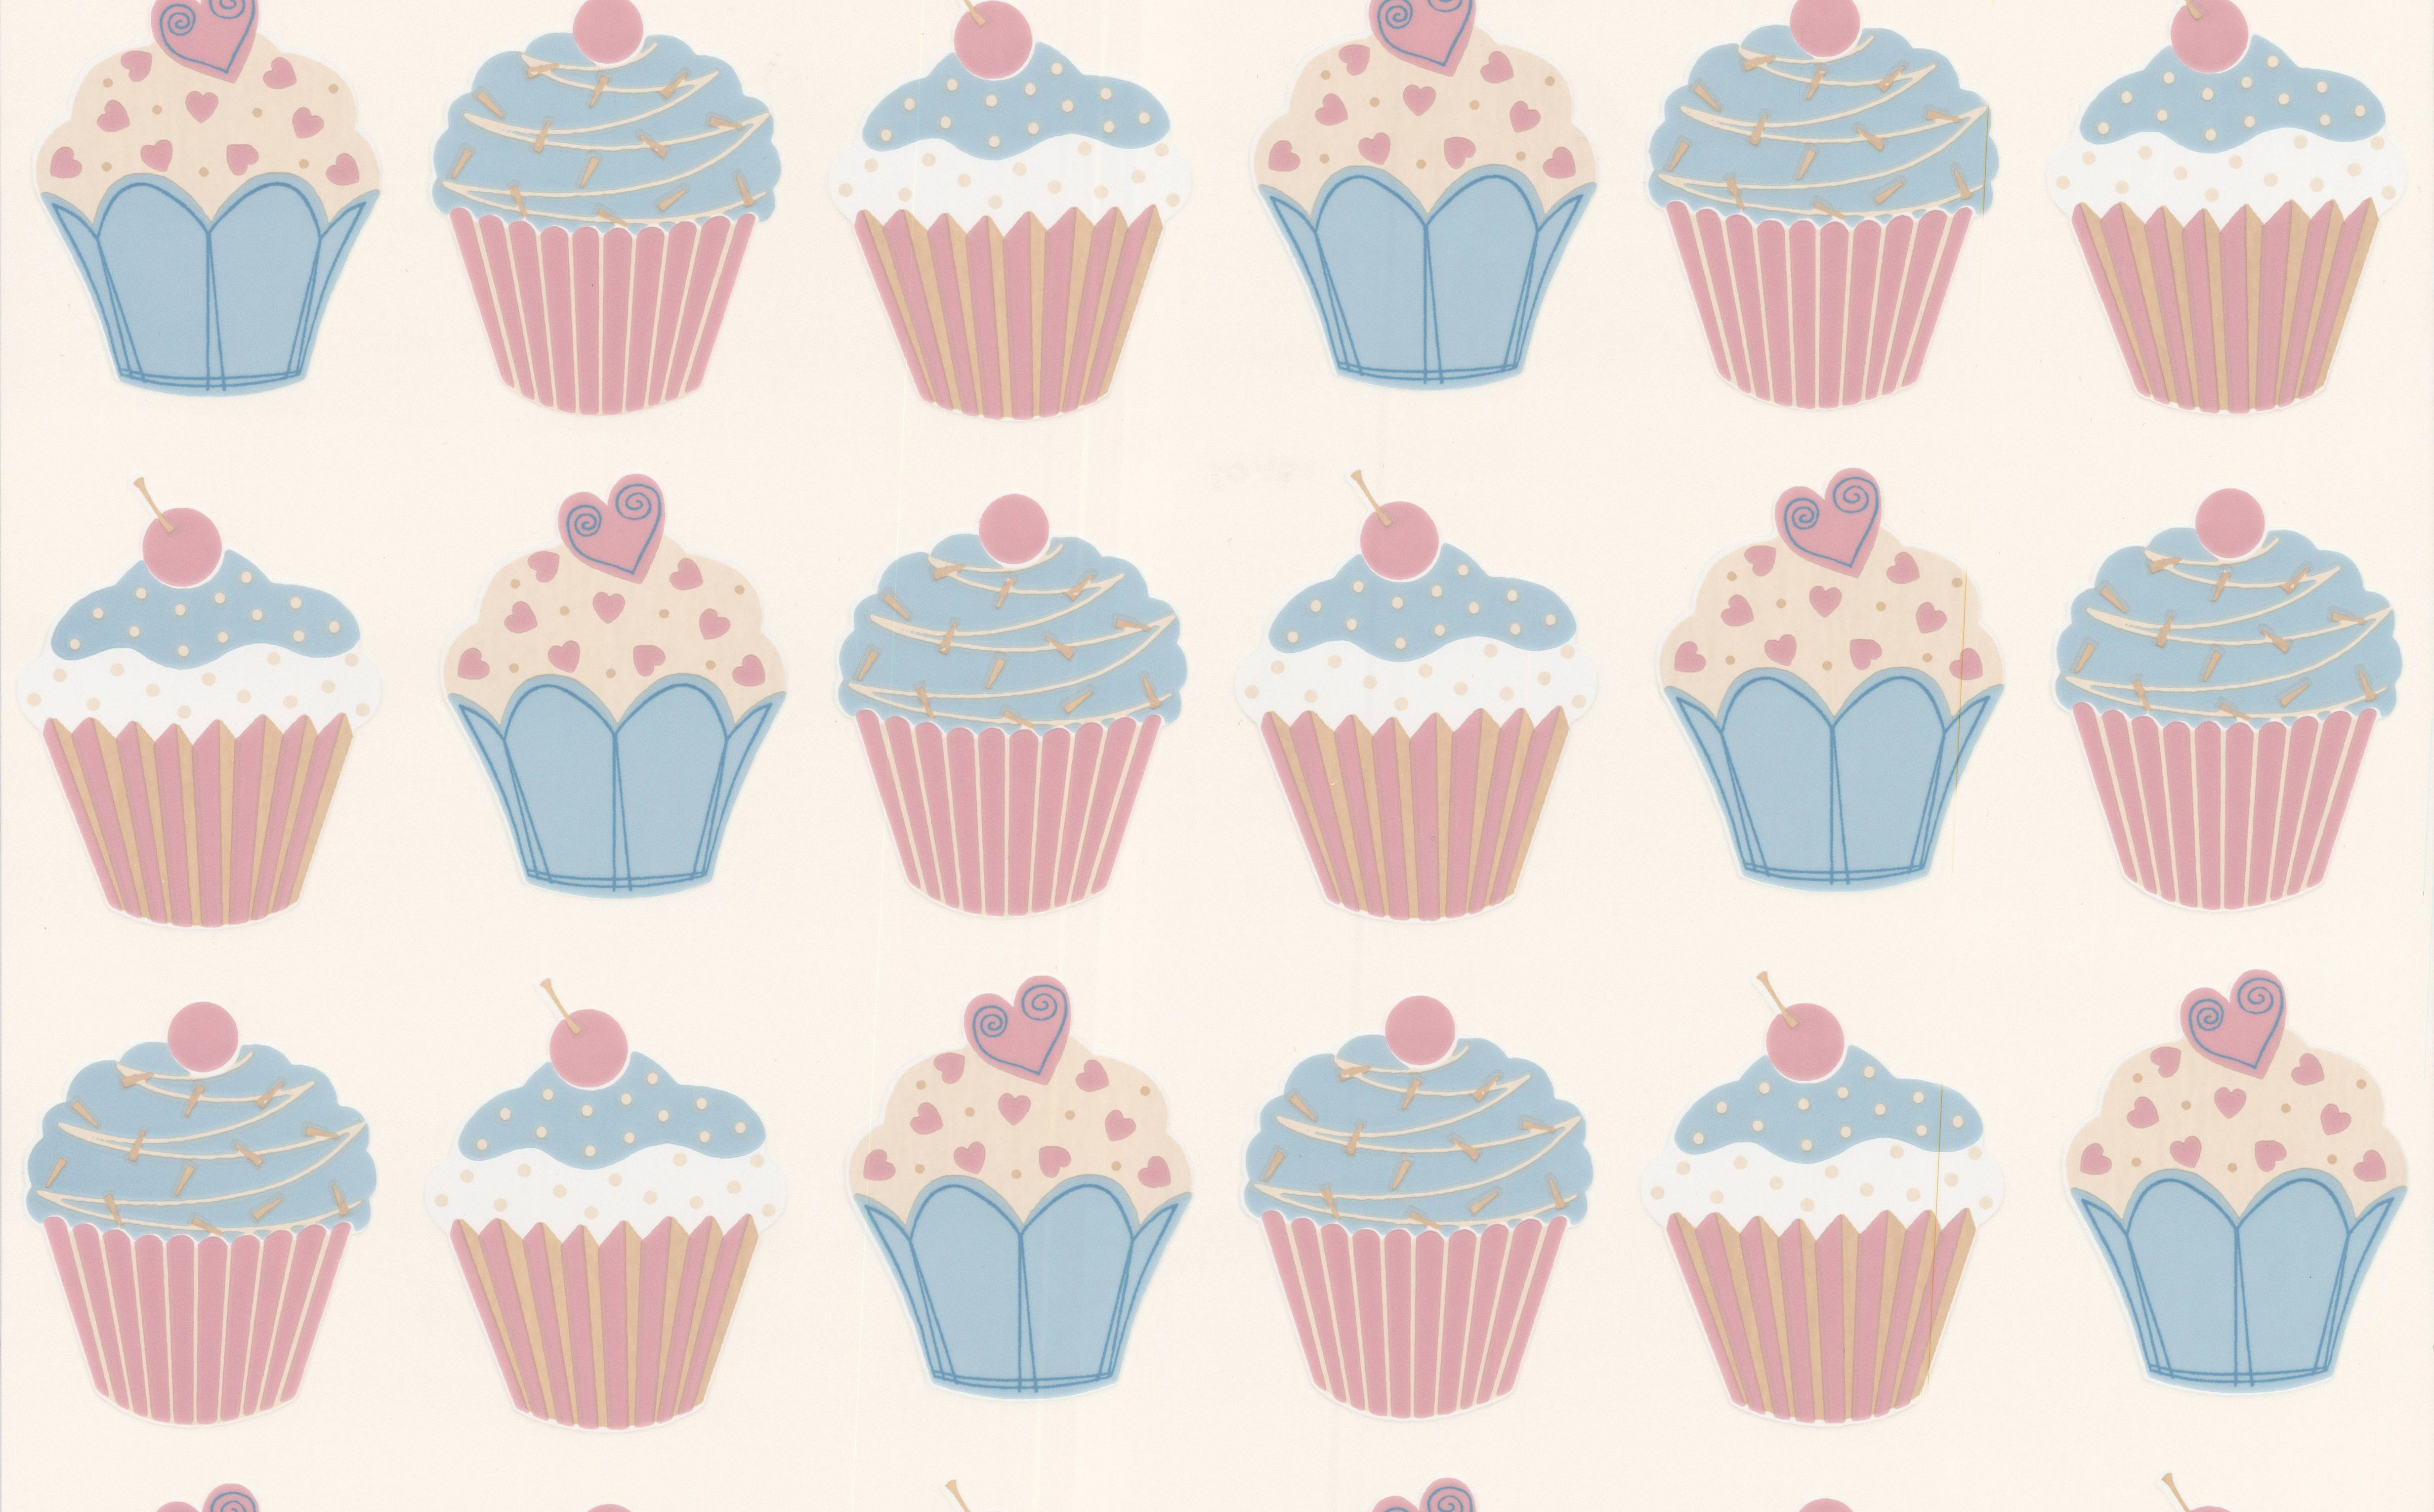 Cupcake Wallpaper   designer wallcovering   Designer Wallpapers 4926x3060